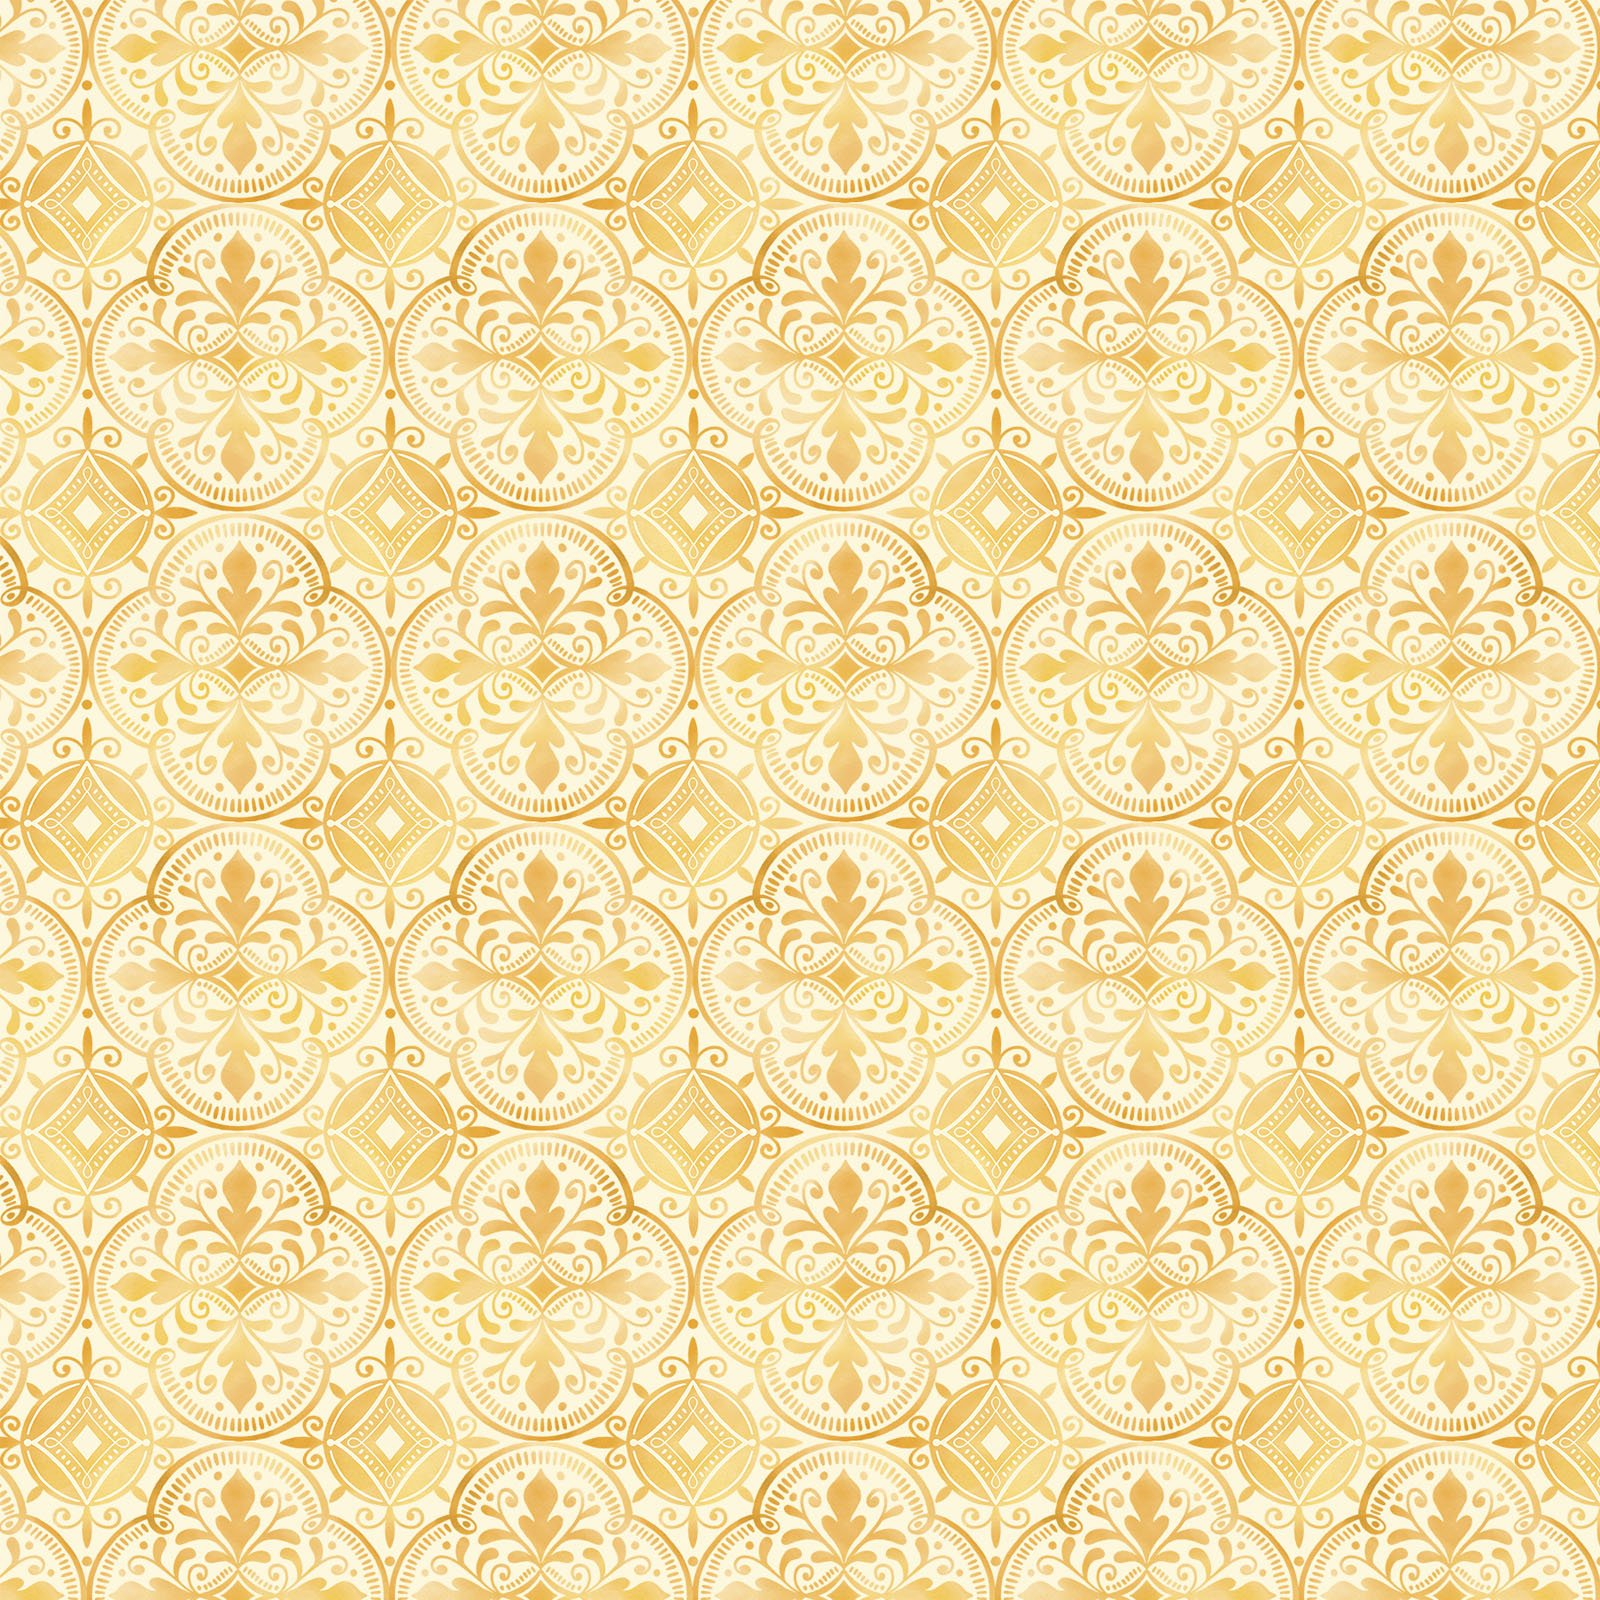 AMBR-4541 Y - AMBROSIA BY NATALIE MILES TILES YELLOW - ARRIVING IN NOVEMBER 2021